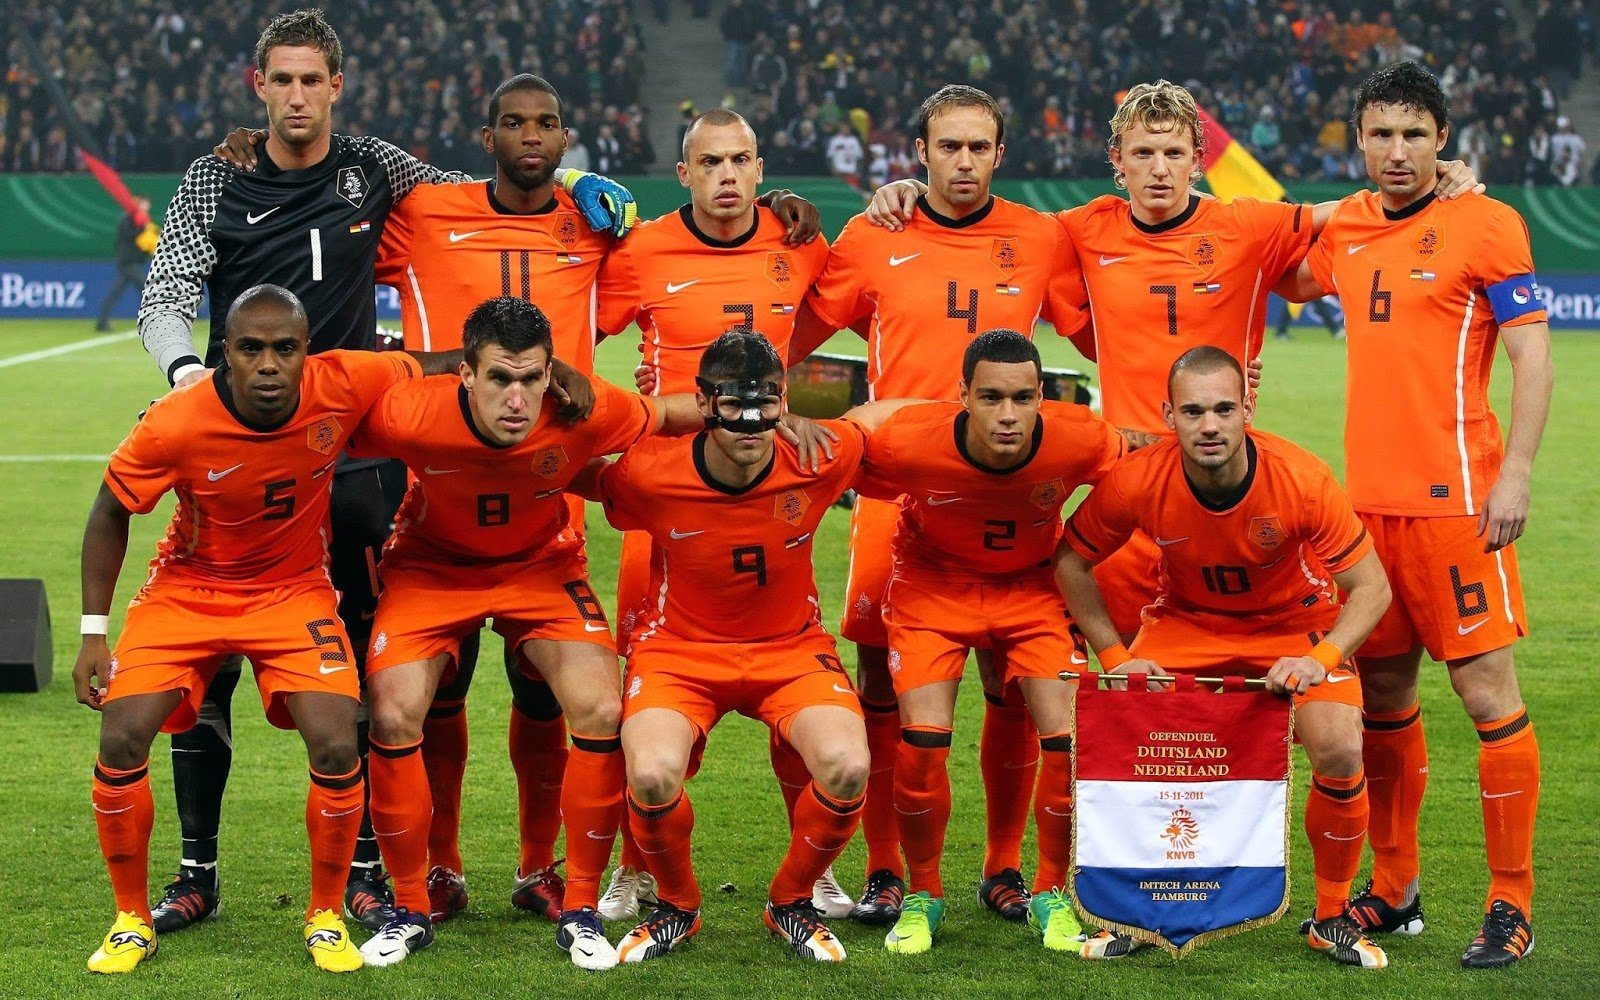 Knvb Wallpaper 103 images in Collection Page 2 1600x1000